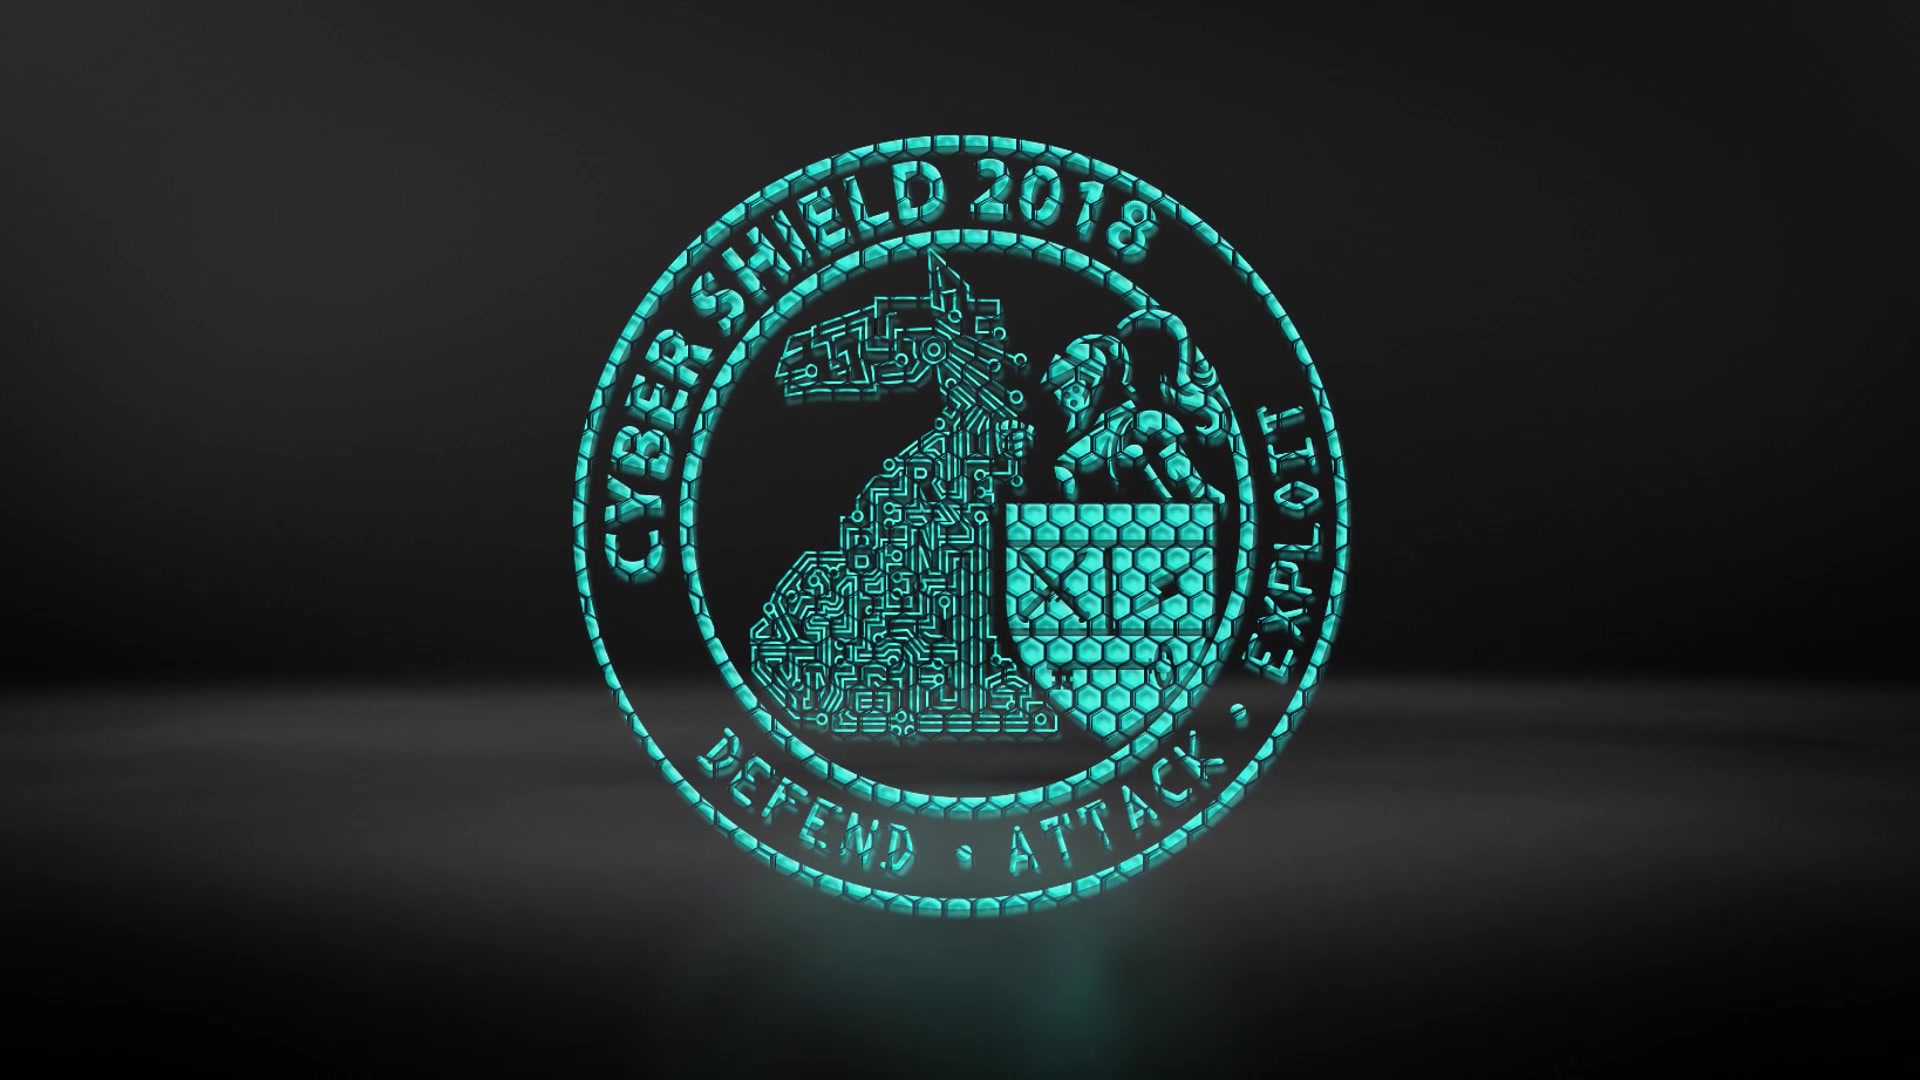 A teaser video for Cyber Shield 18 which reavels the event logo.